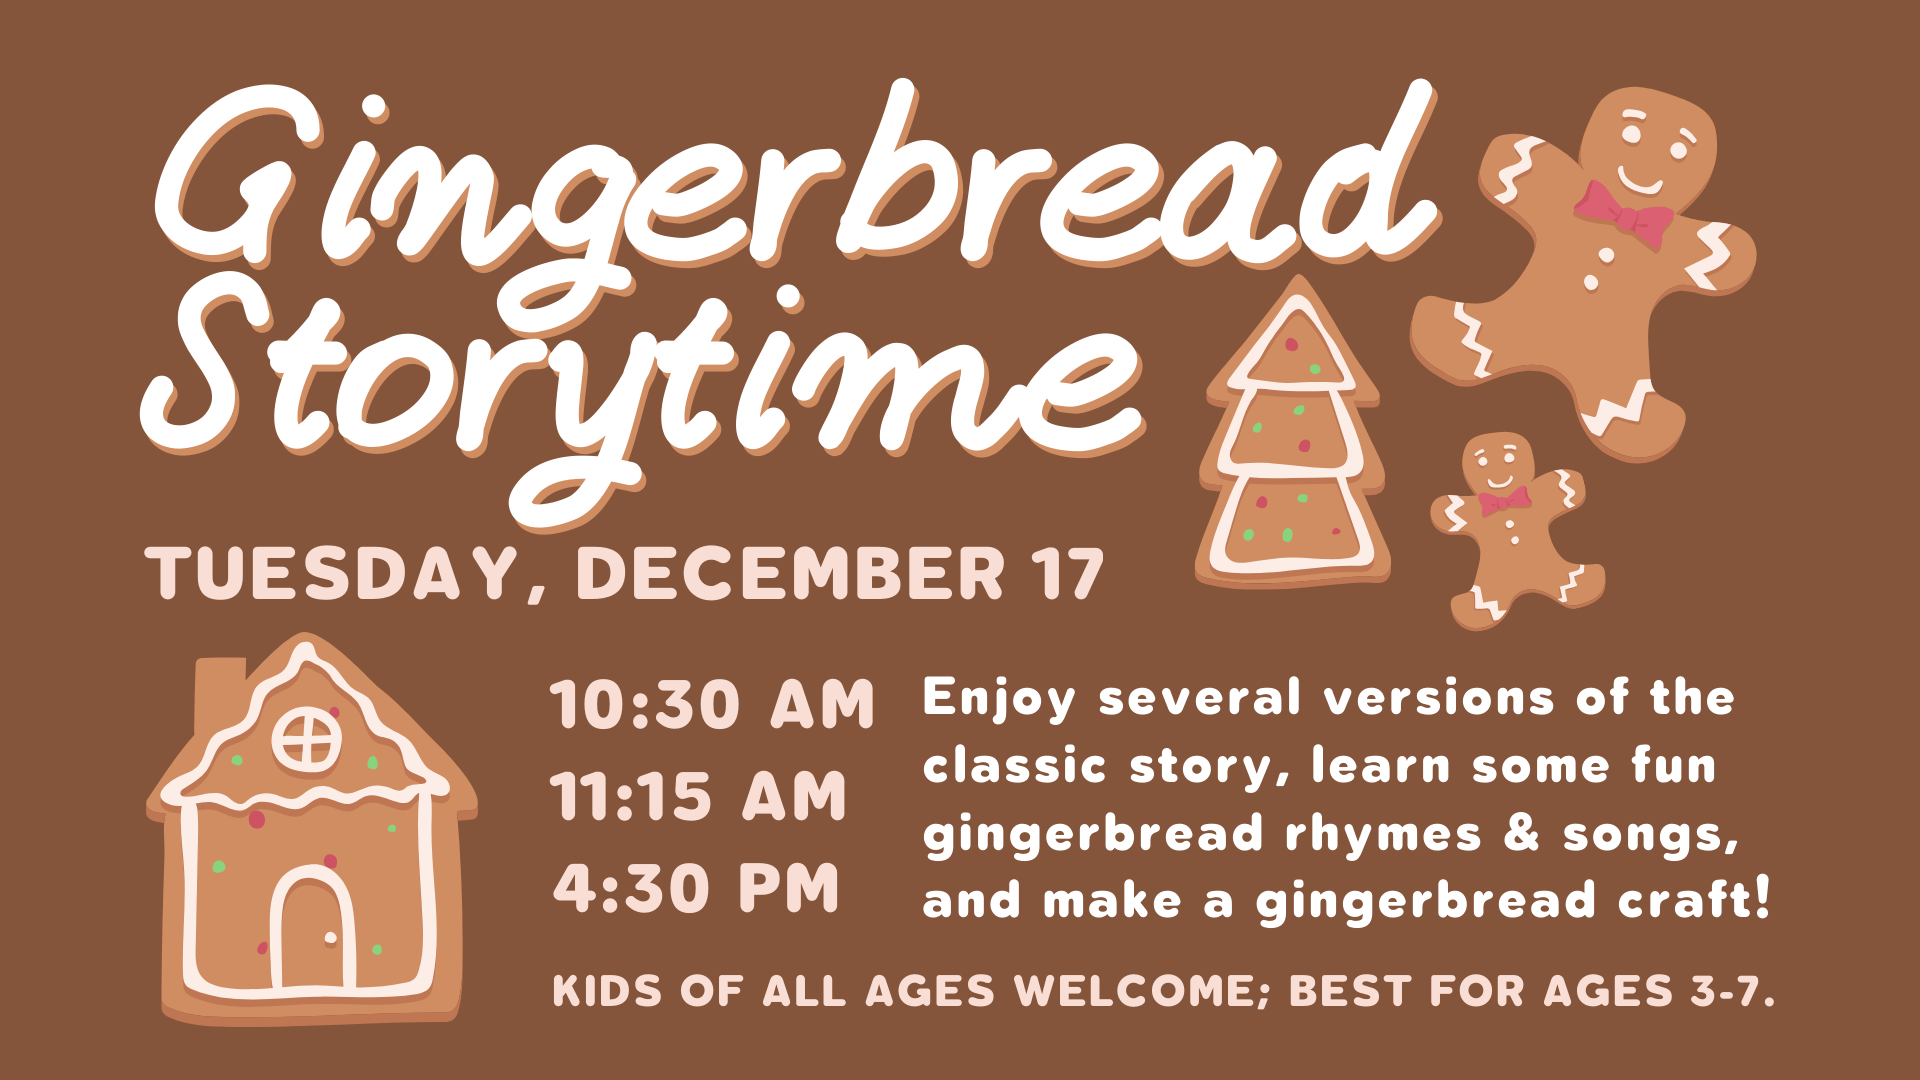 Gingerbread Man Storytime & Craft @ Storytime Room